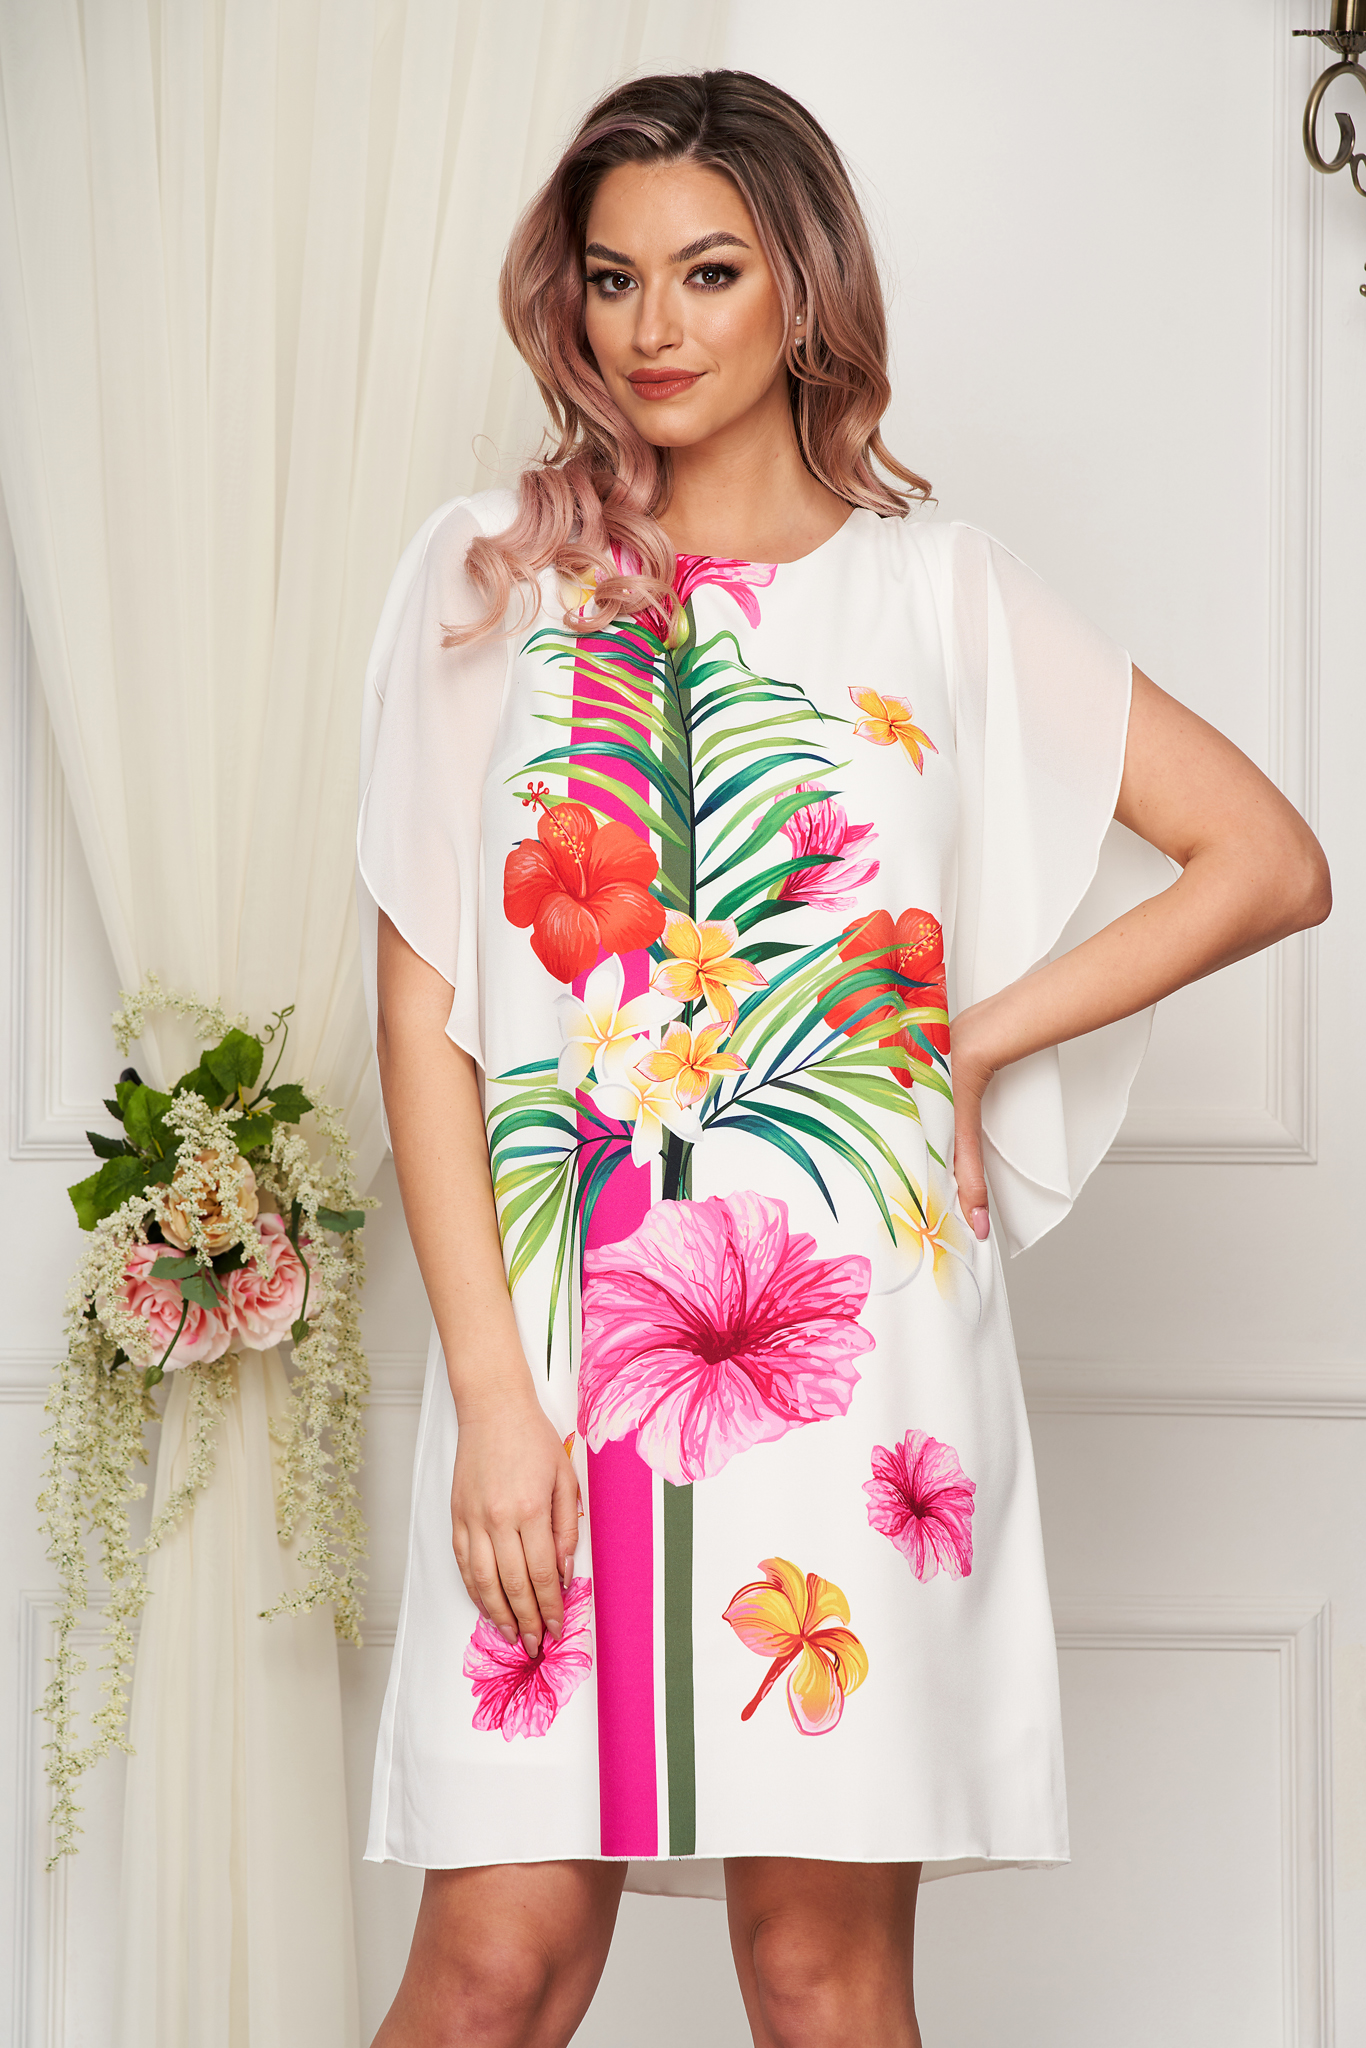 StarShinerS ivory dress elegant flared with veil sleeves slightly elastic fabric with floral prints